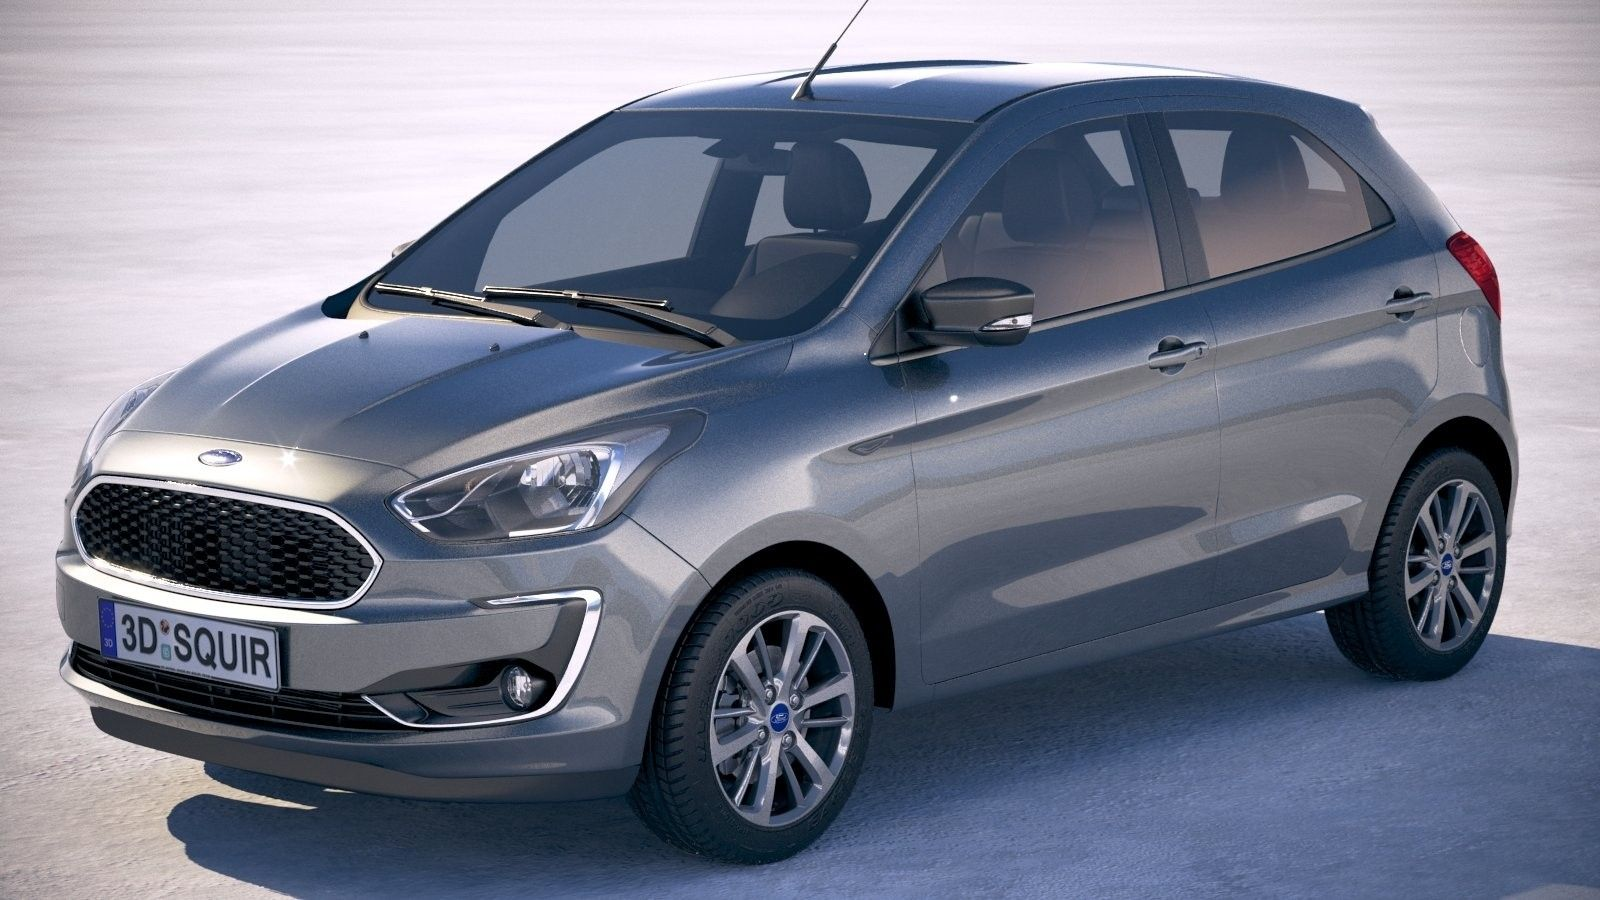 2019 Ford Ka Plus Review Styling Interior Engine Price Sale